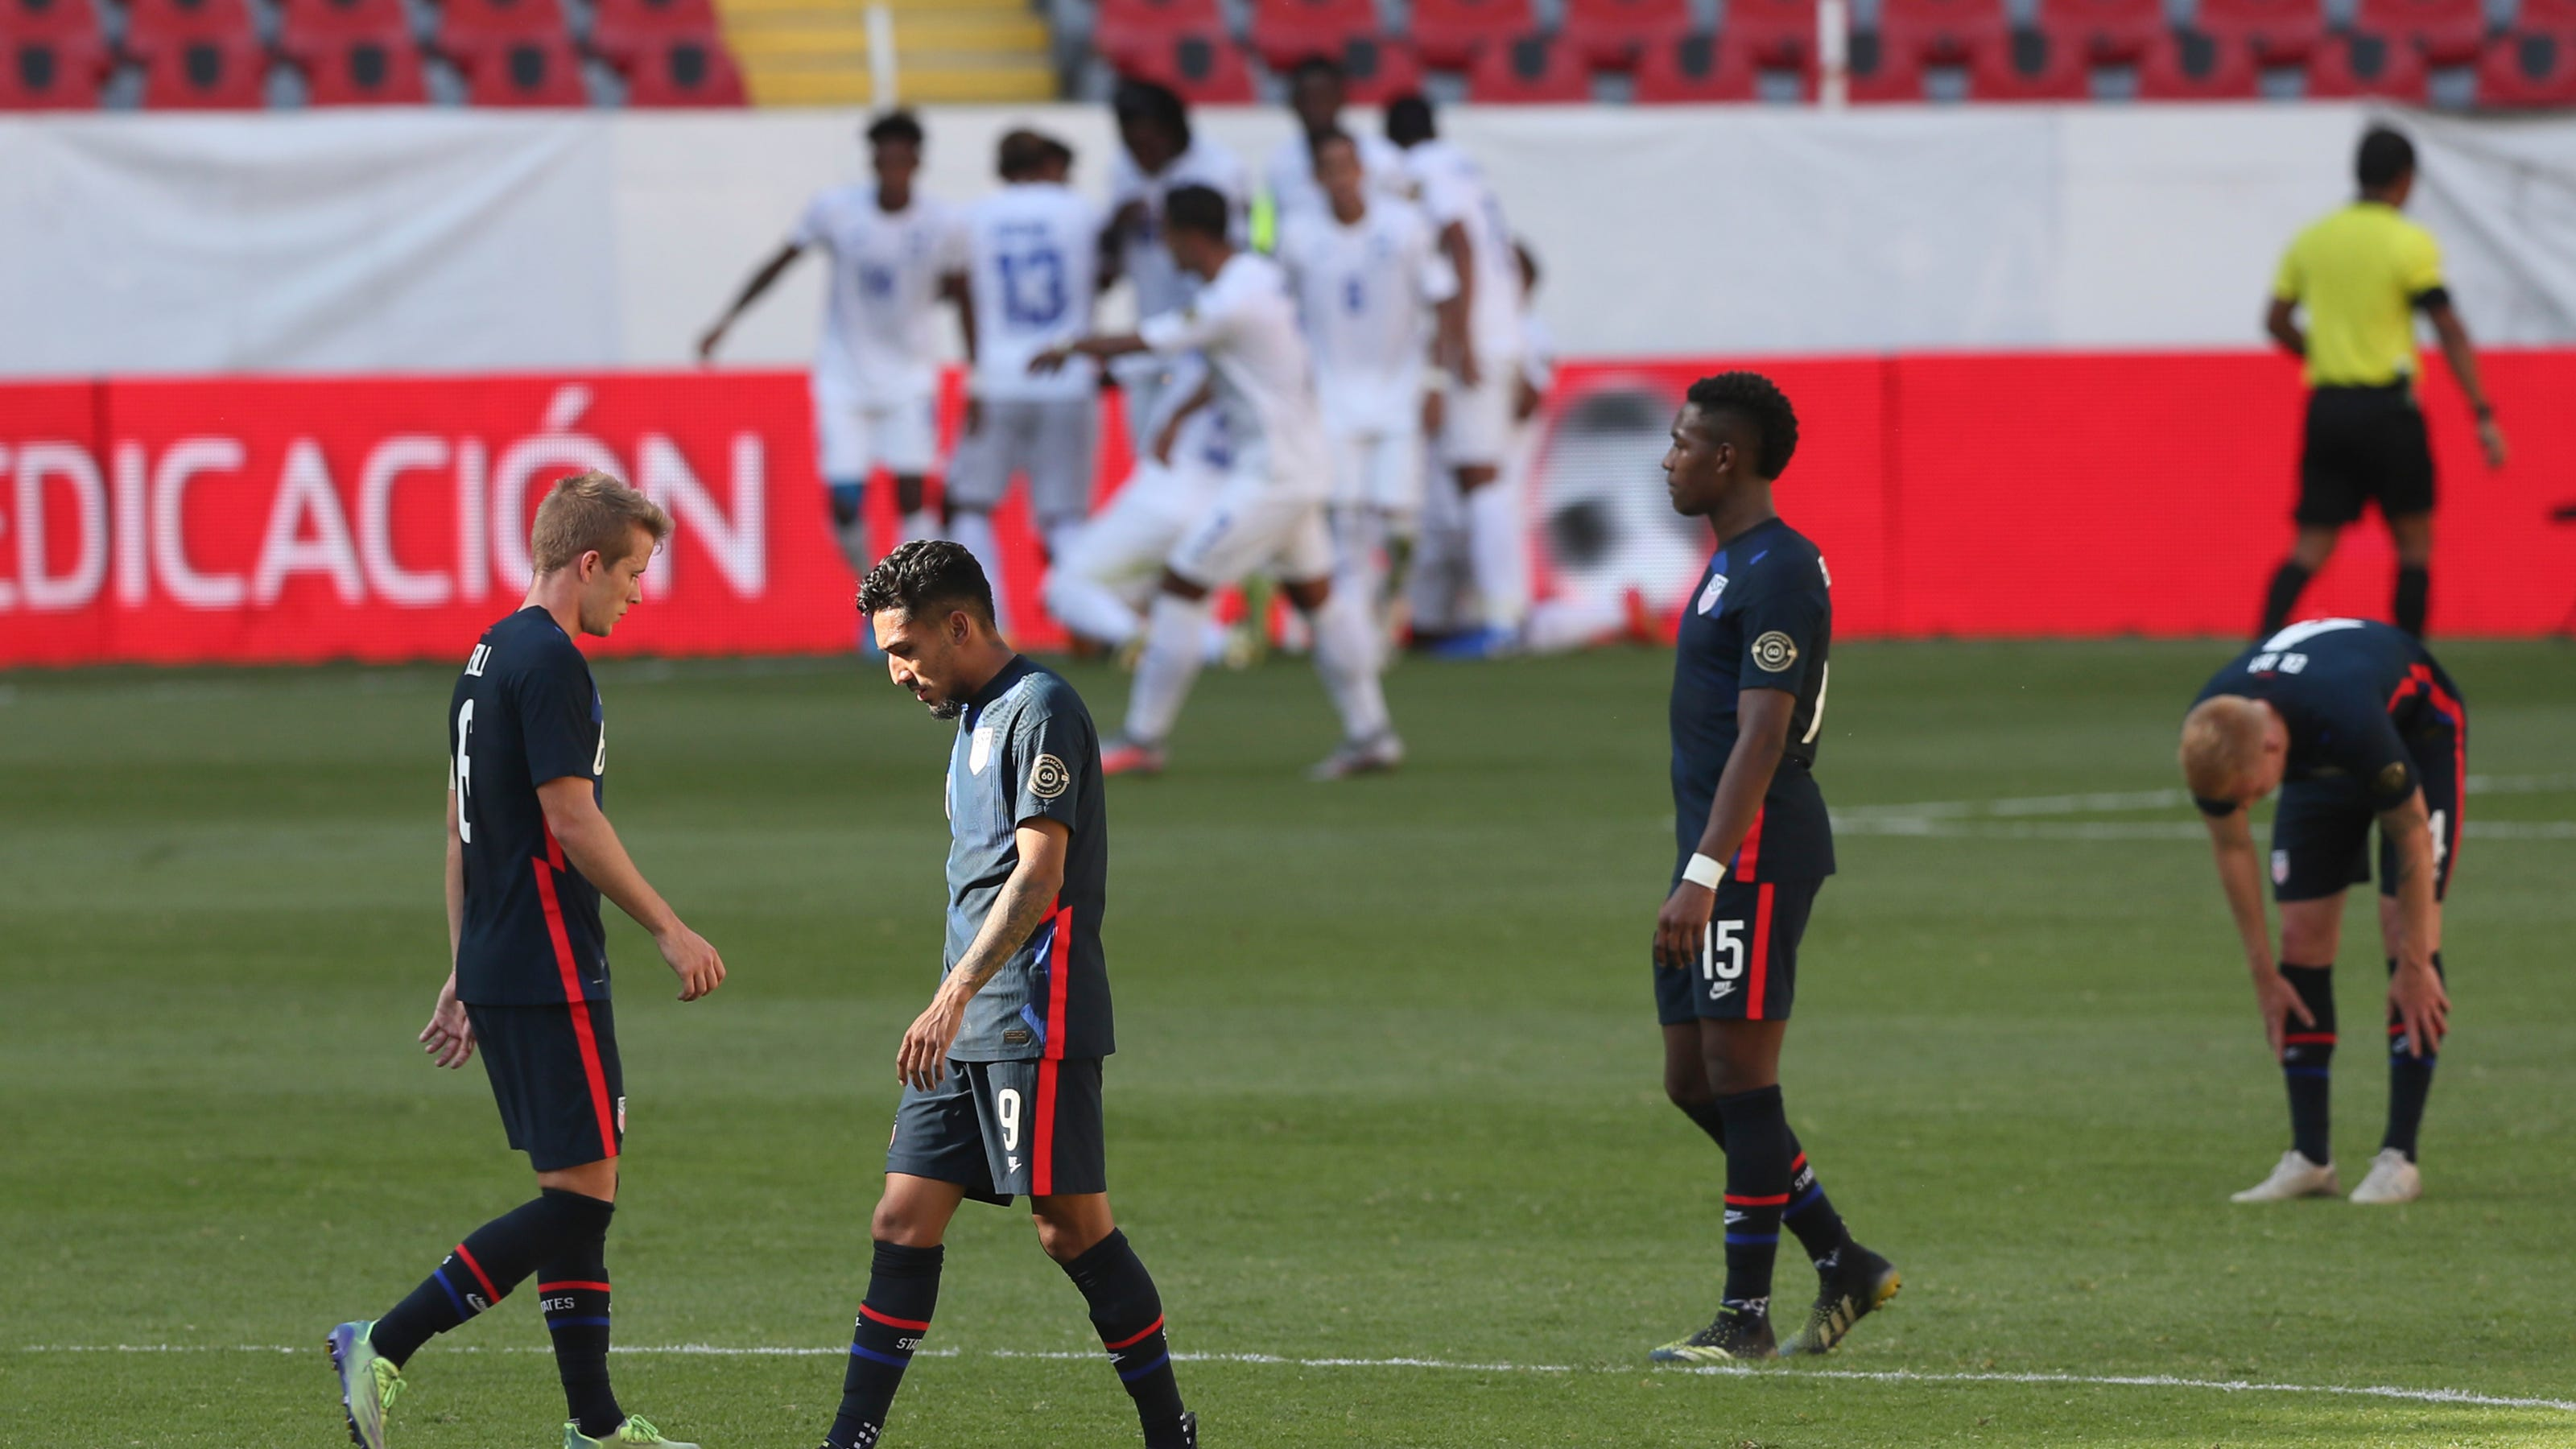 Olympic Qualifying U S Men S Soccer Team Fails To Reach Summer Games